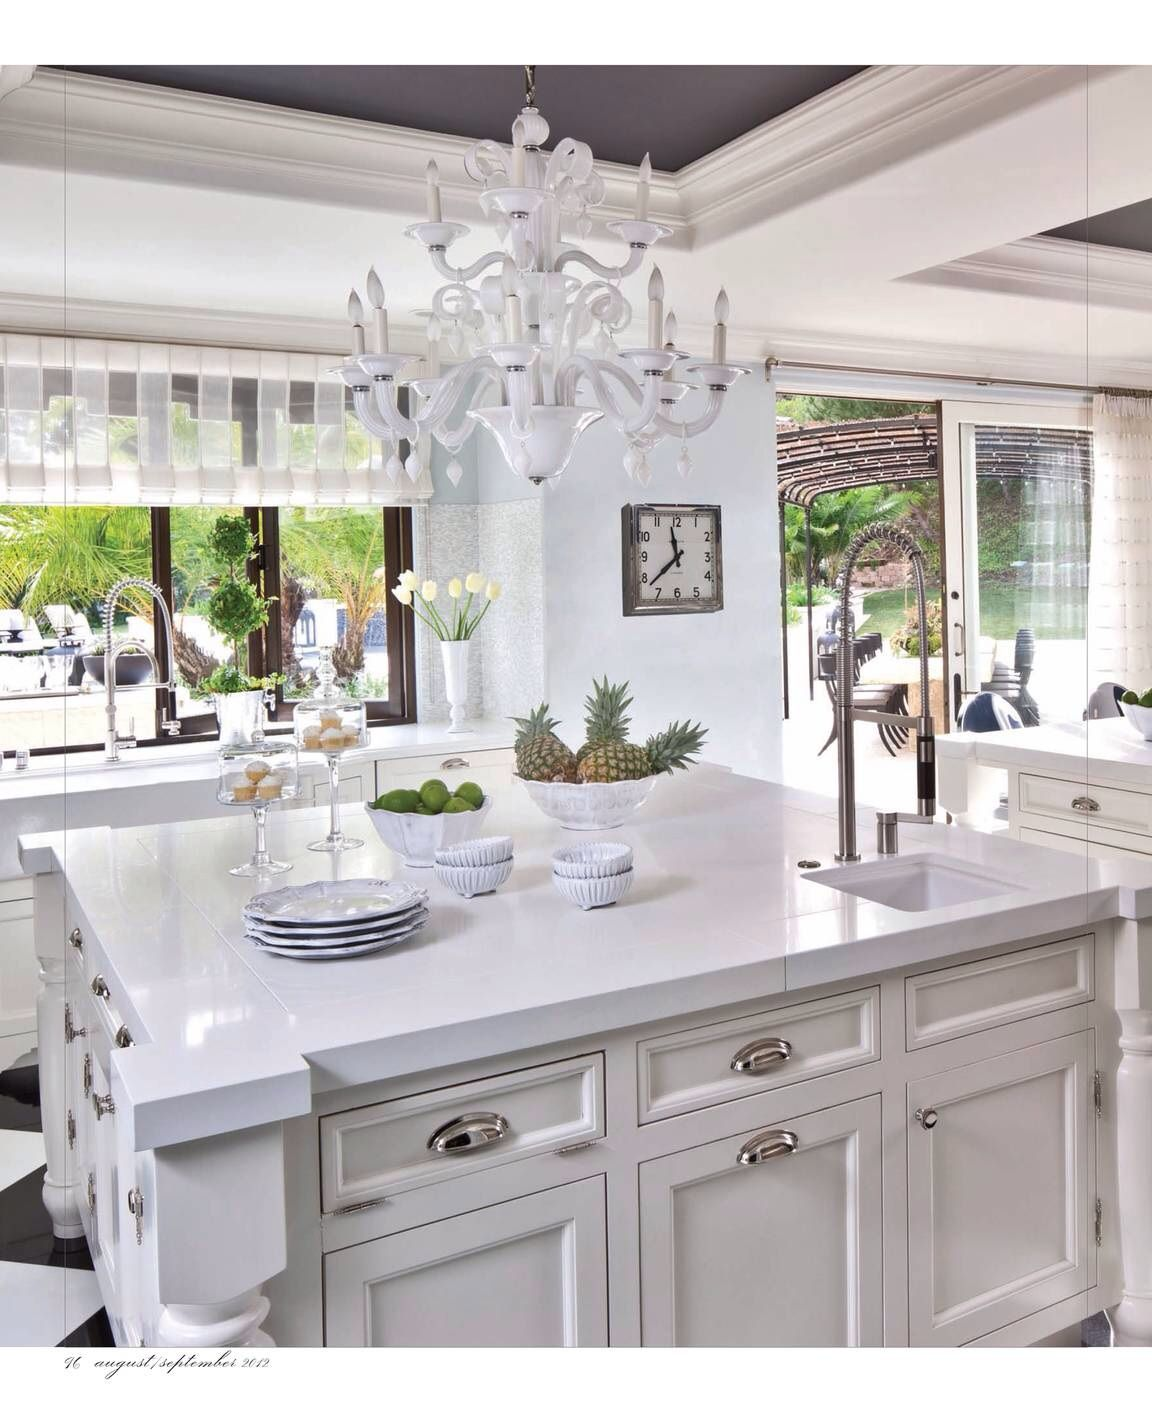 Pin By Paige Widner On Kitchen Ideas In 2019